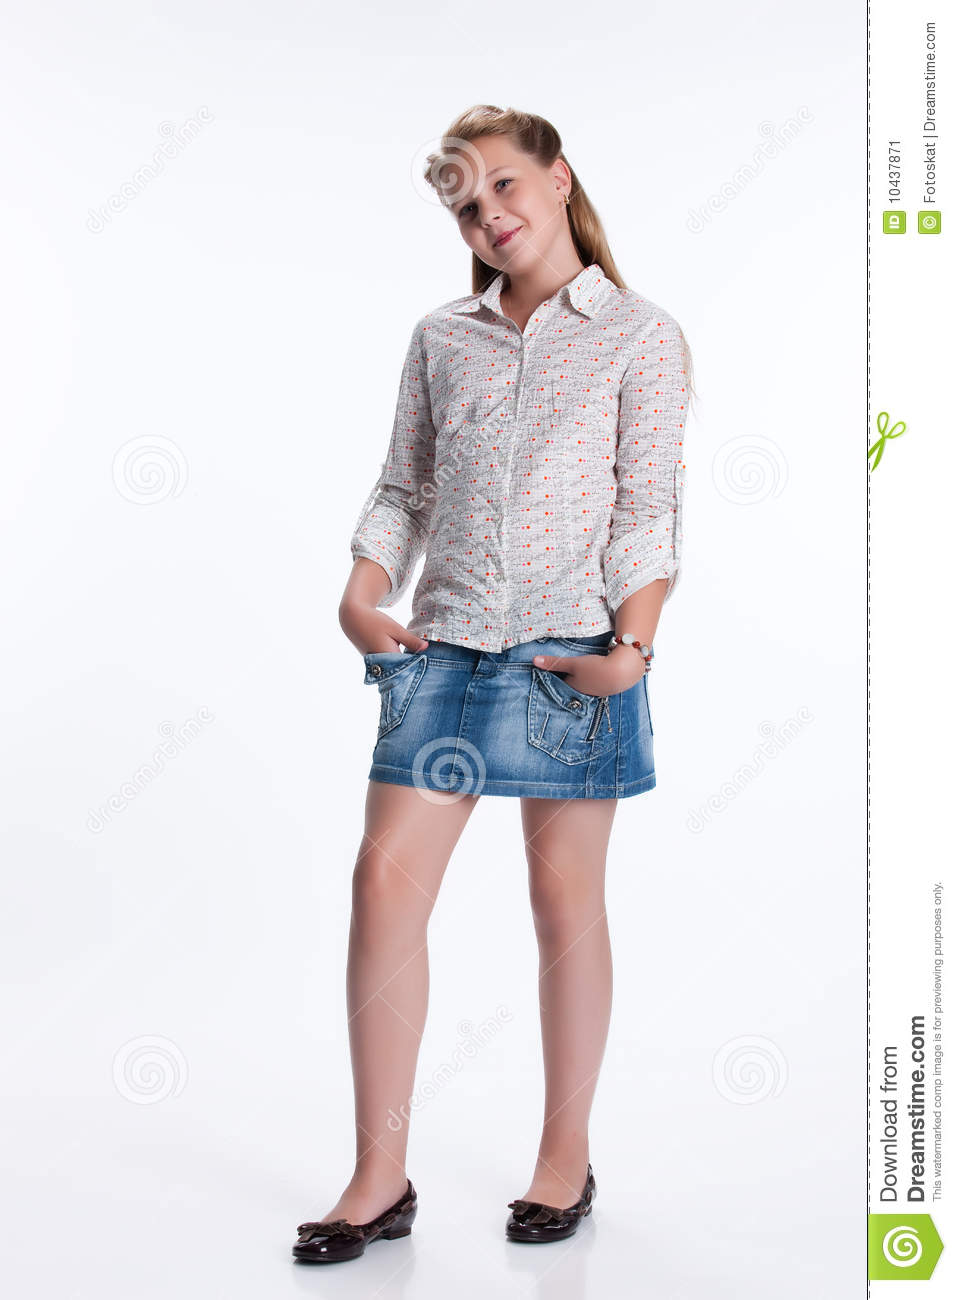 young girls in skirts pussy